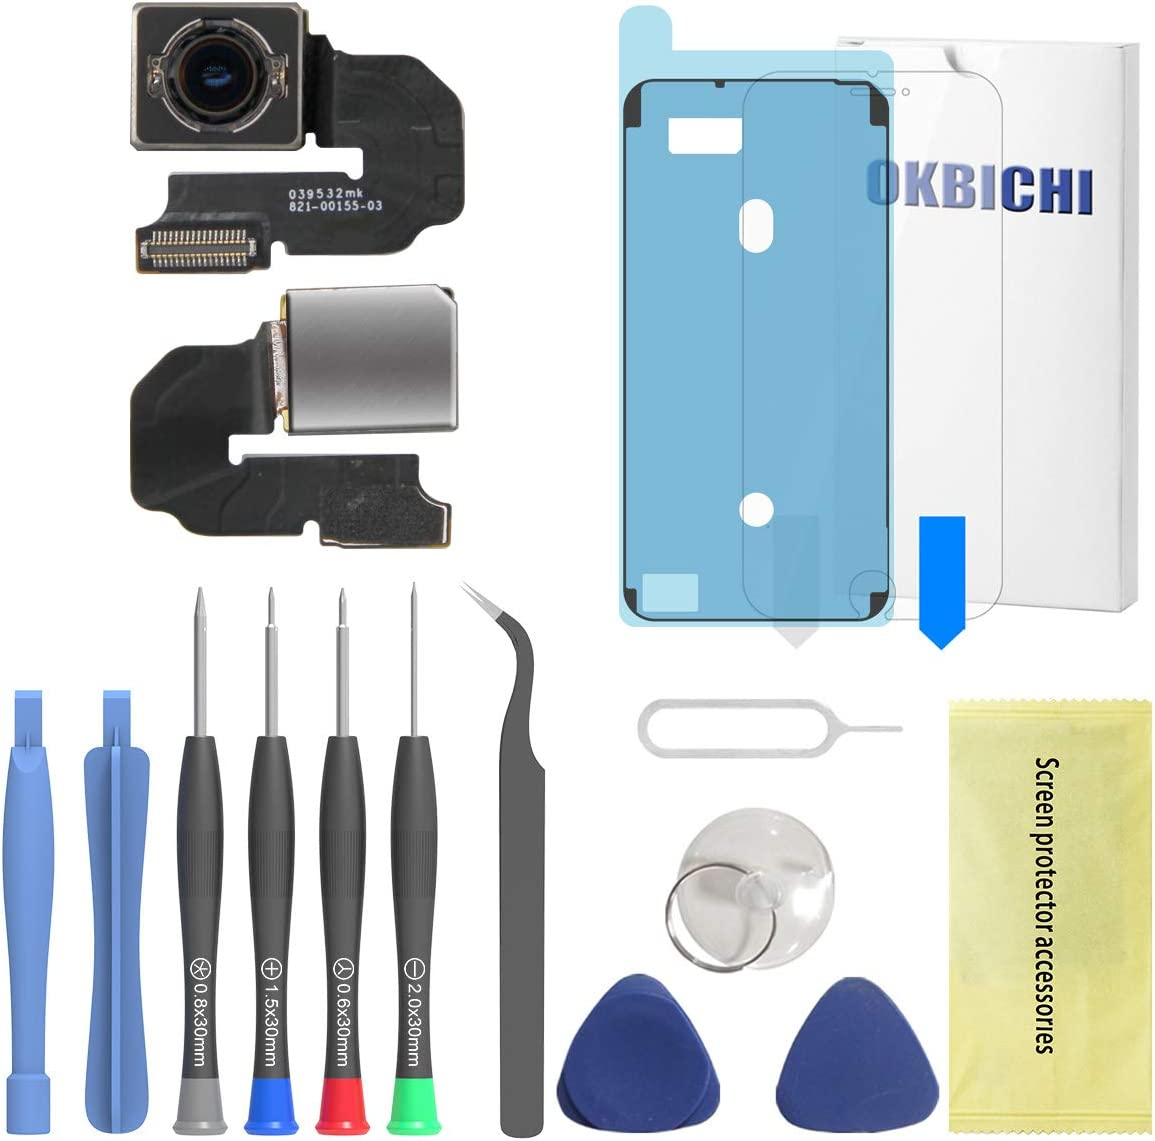 OKBICHI Rear Camera for iPhone 6S Plus (All Carriers) Back Camera Module Flex Cable Replacement - Repair Tools with Screen Protector and Waterproof Seal